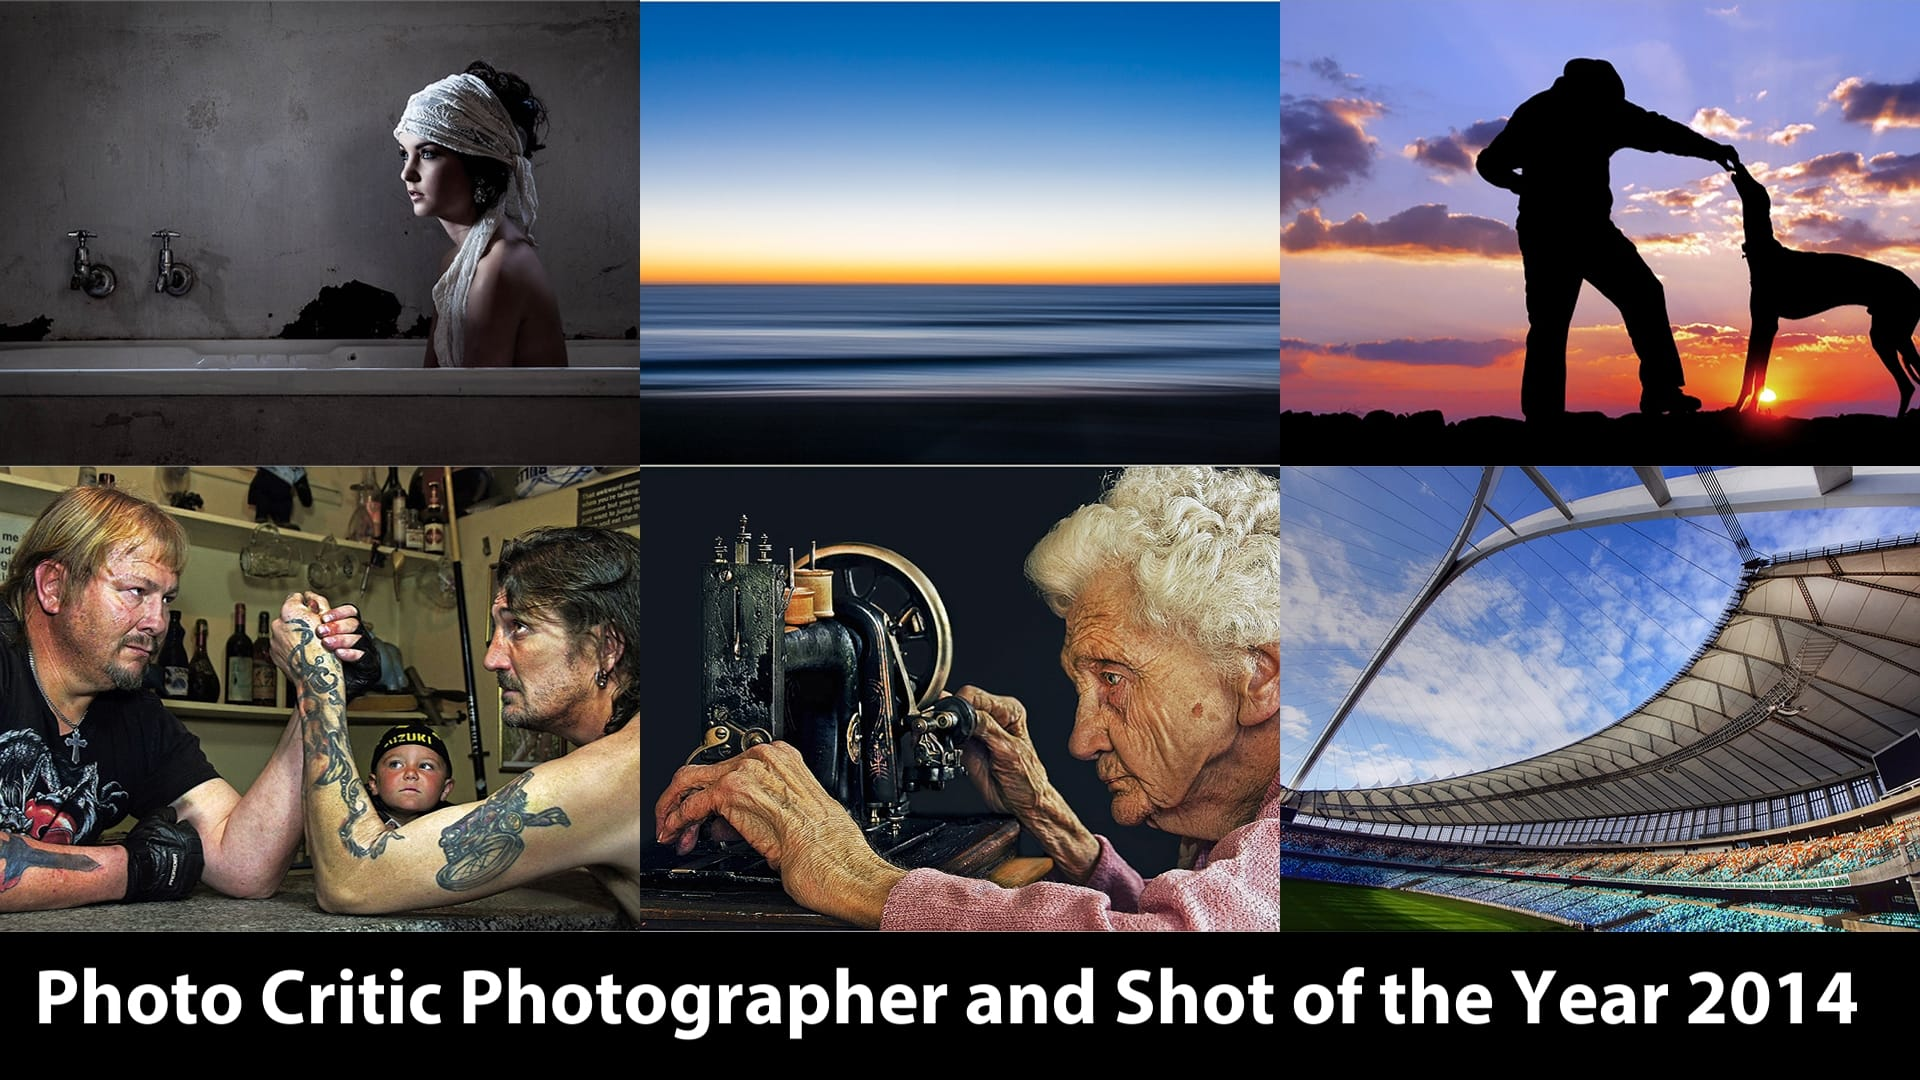 Photo Critic Photographer and Photo of the Year 2014